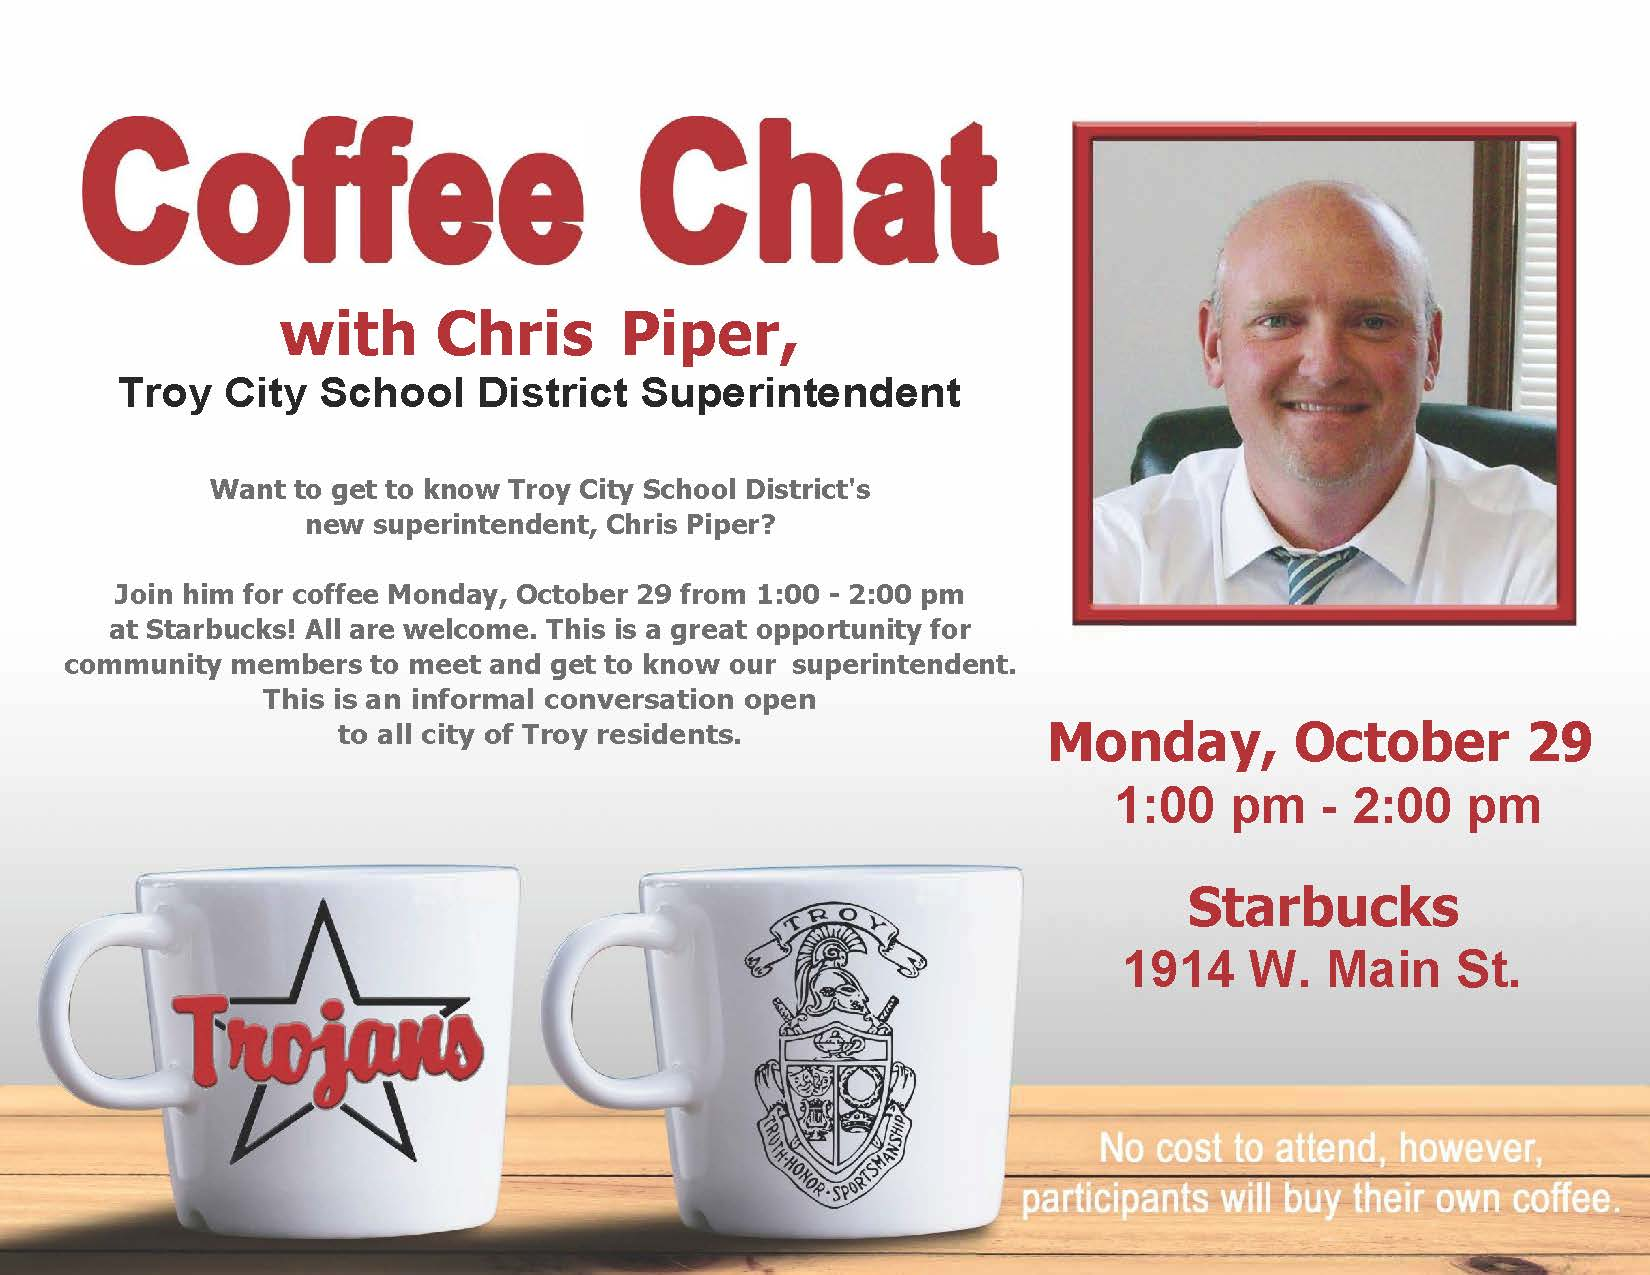 Coffee Chat with Chris Piper